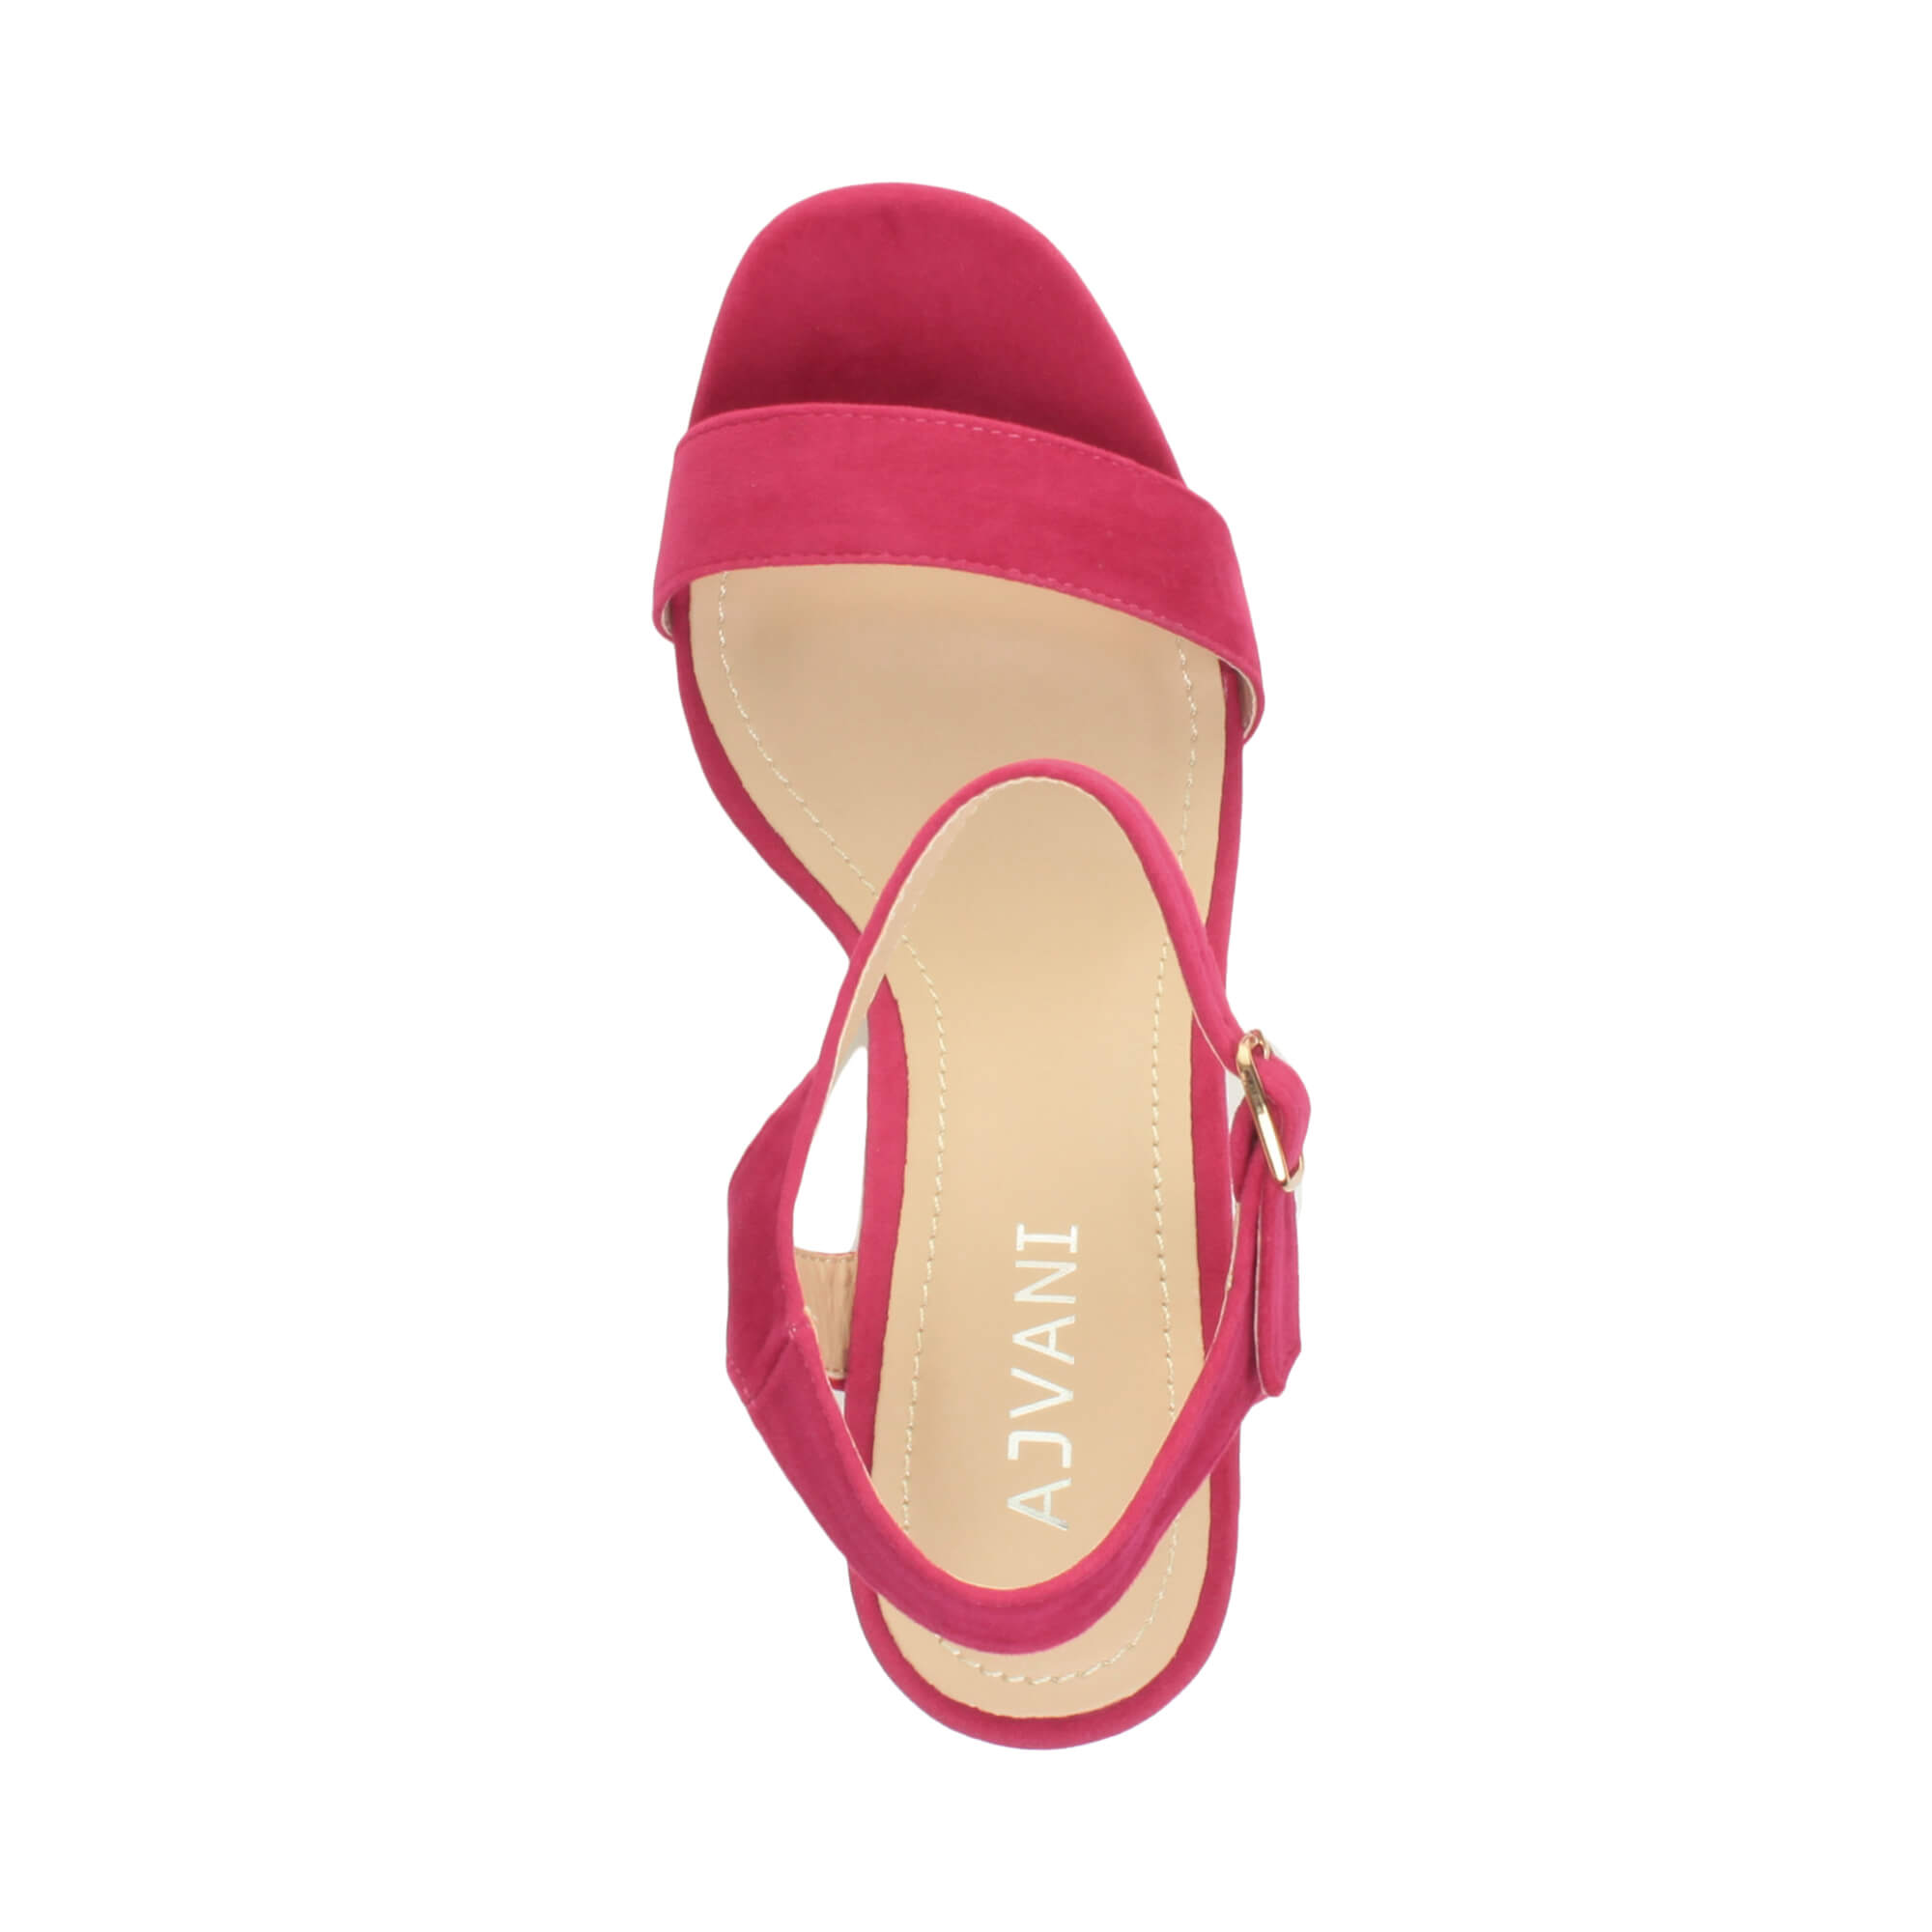 WOMENS-LADIES-HIGH-HEEL-BUCKLE-STRAPPY-BASIC-BARELY-THERE-SANDALS-SHOES-SIZE thumbnail 35